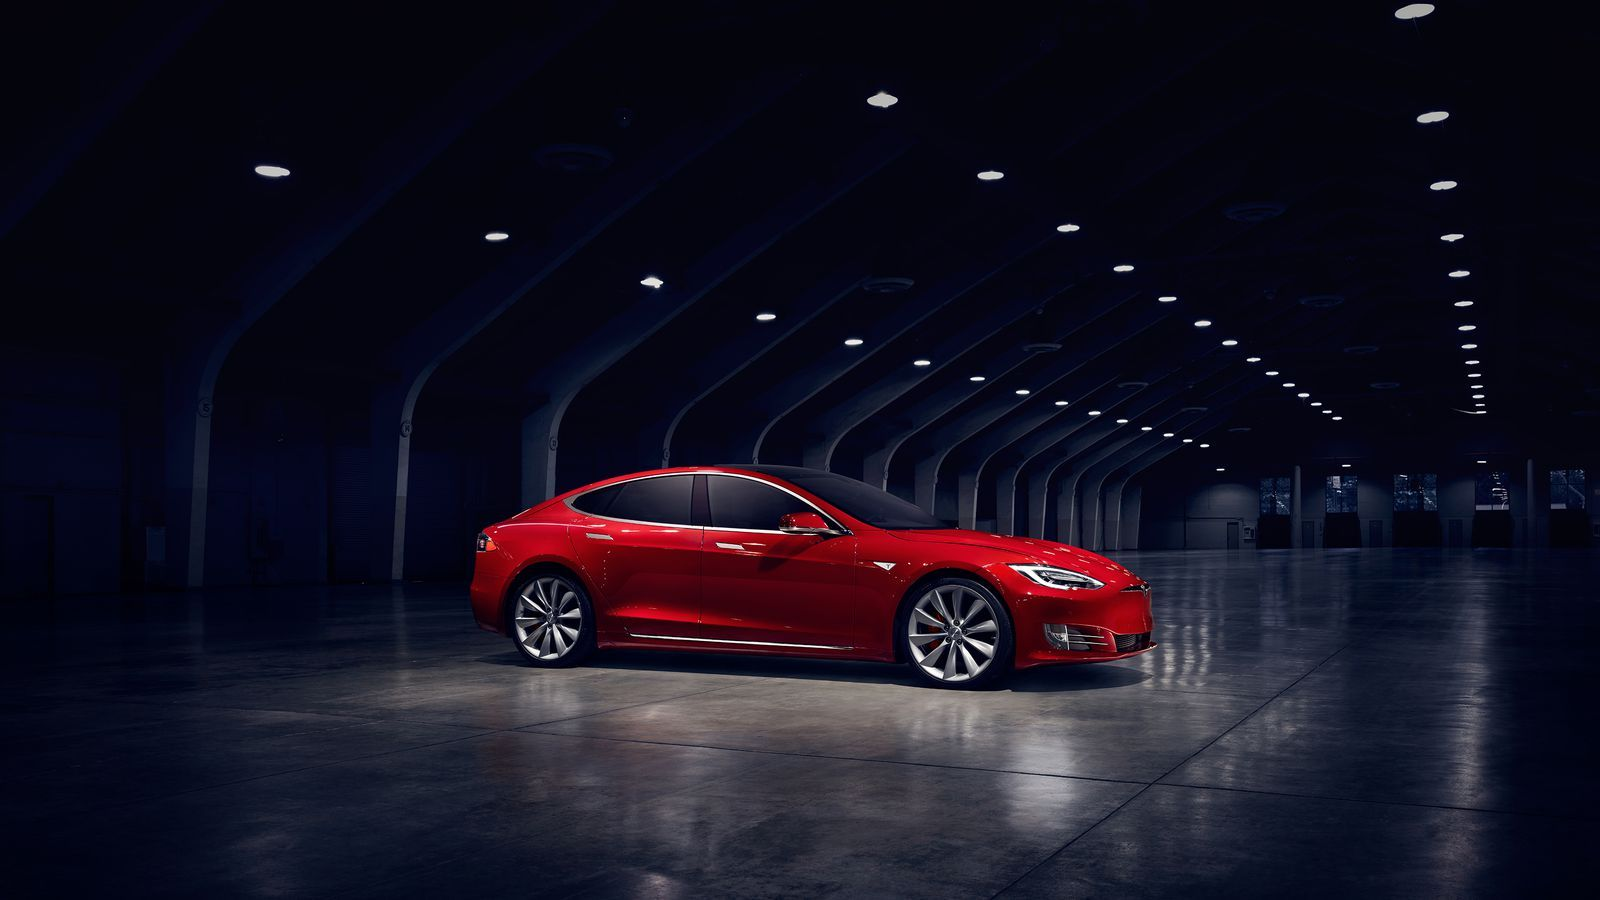 Tesla S New 100kwh Battery Makes Ludicrous Mode Even More Ludicrous Tesla Model S Tesla Model Tesla